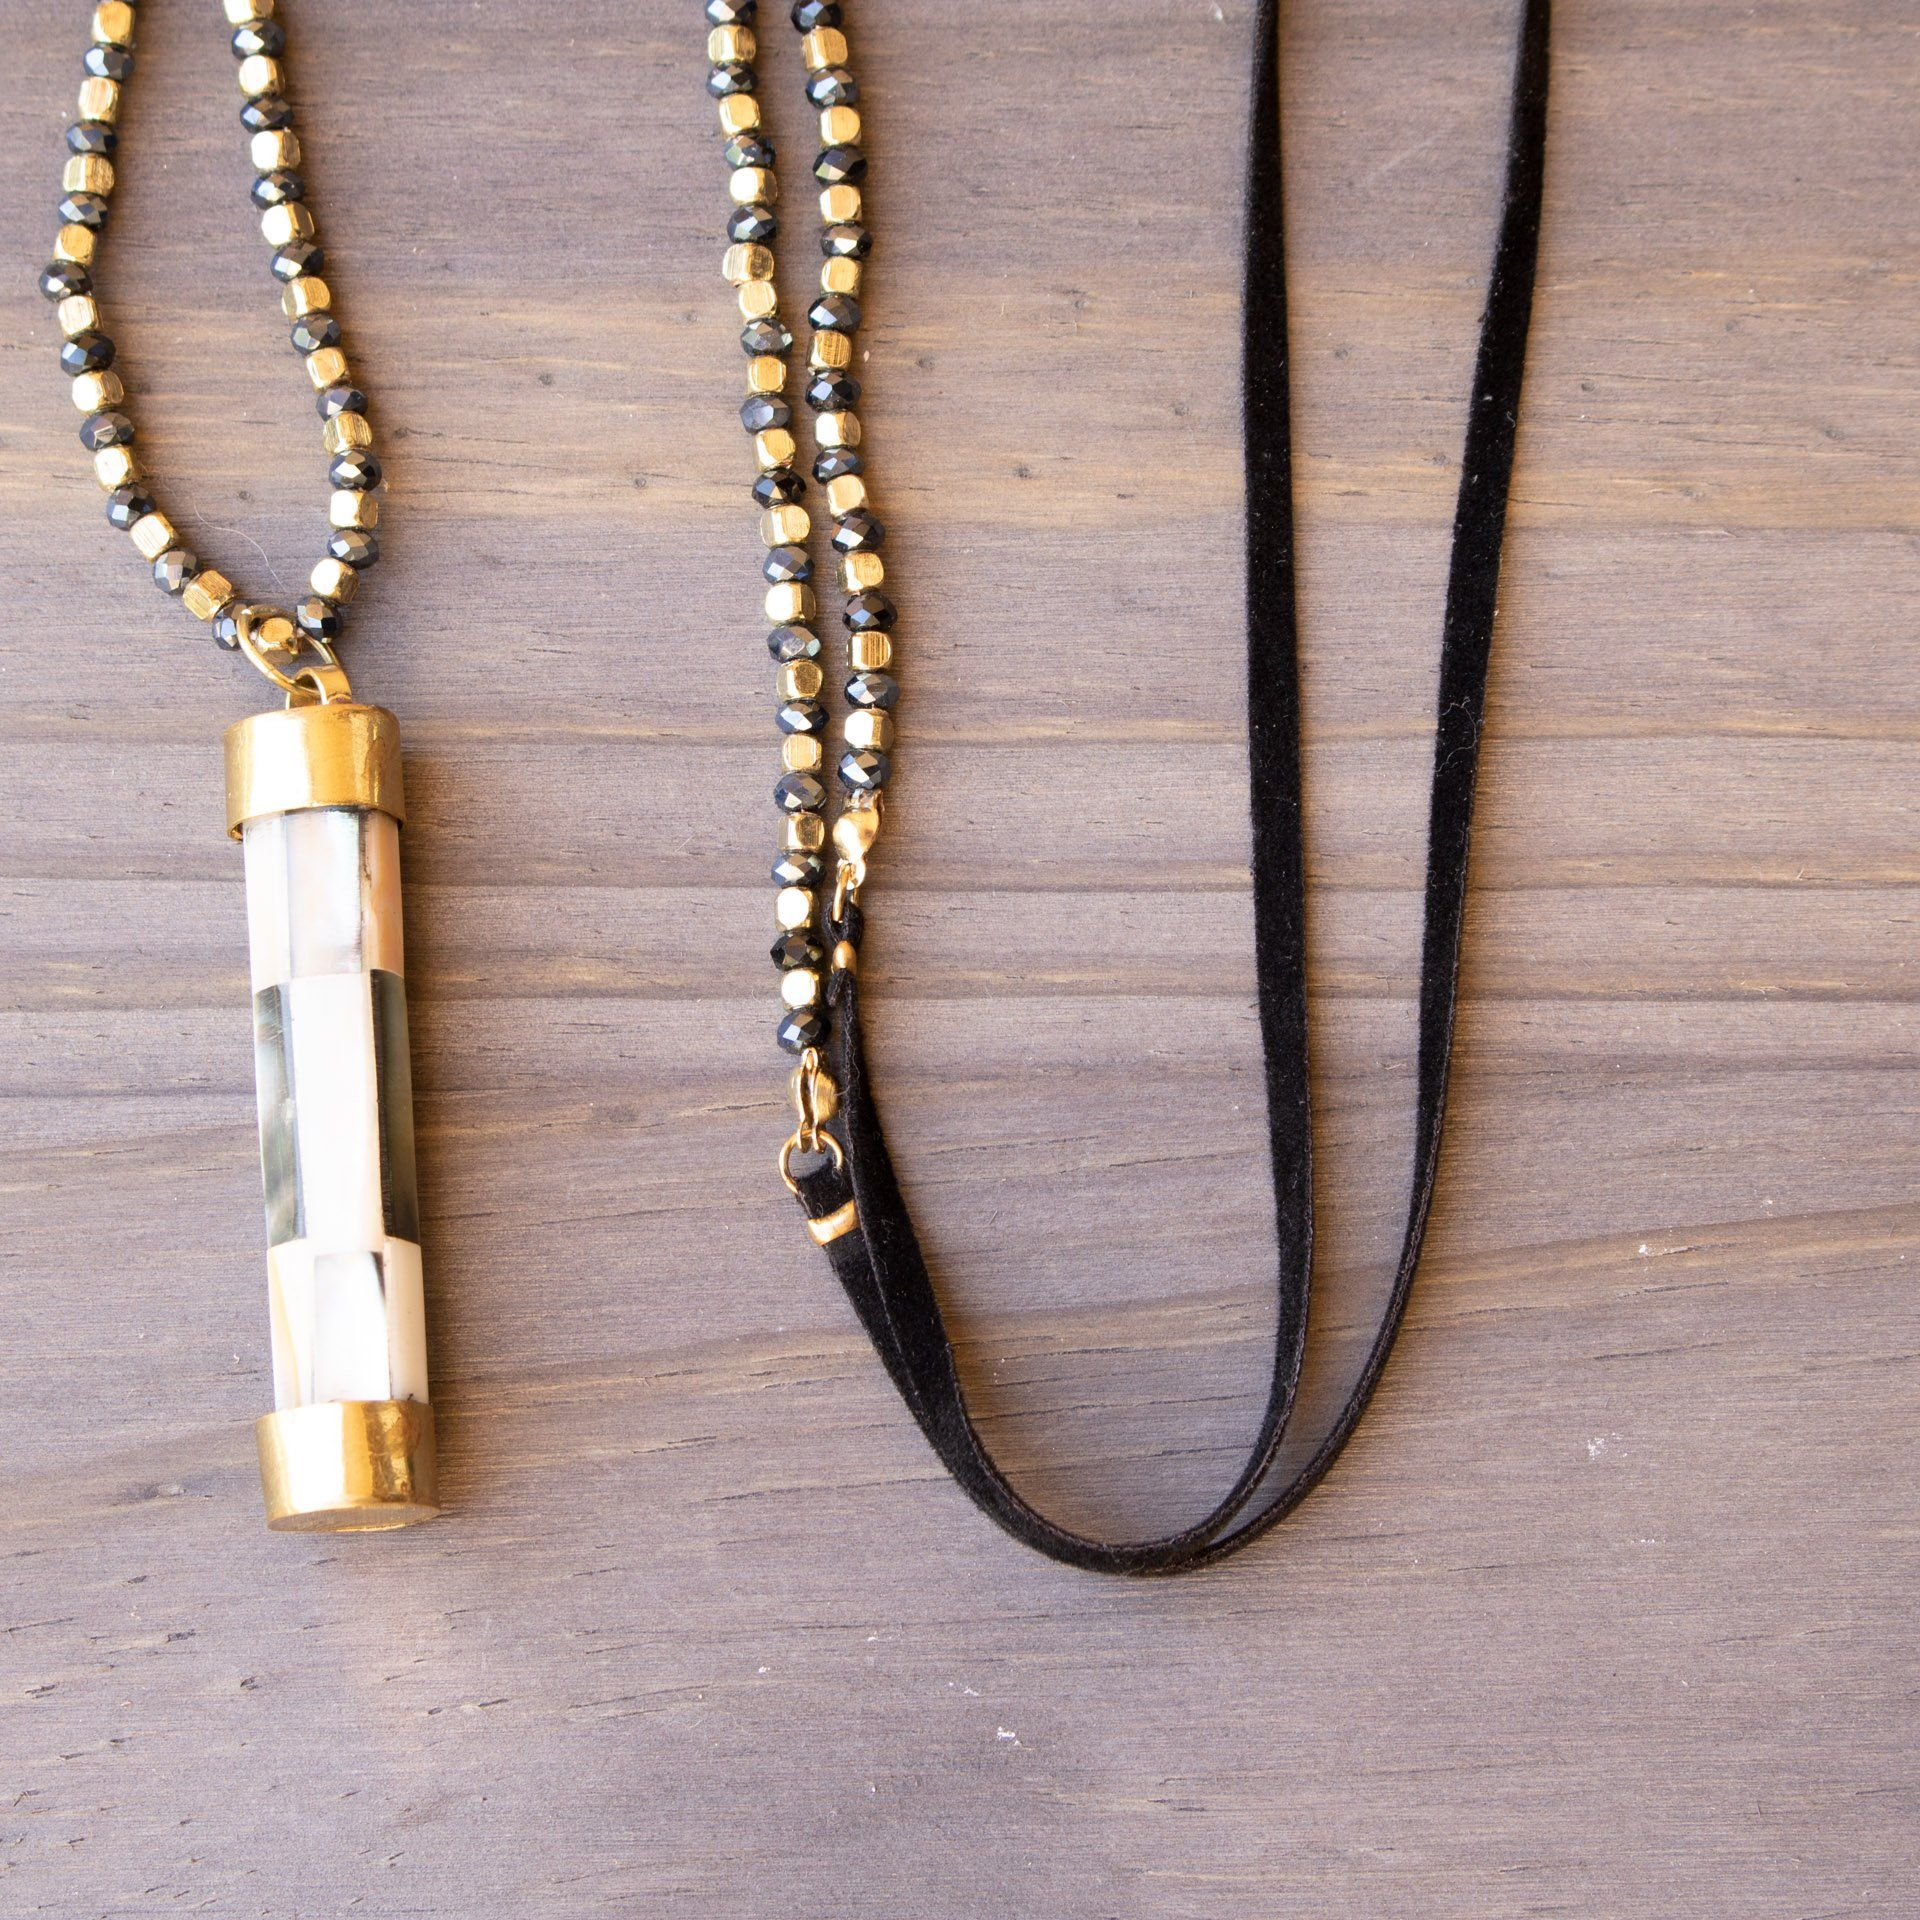 Beaded And Suede Necklace With Mother Of Pearl Pendant - Arlo and Arrows